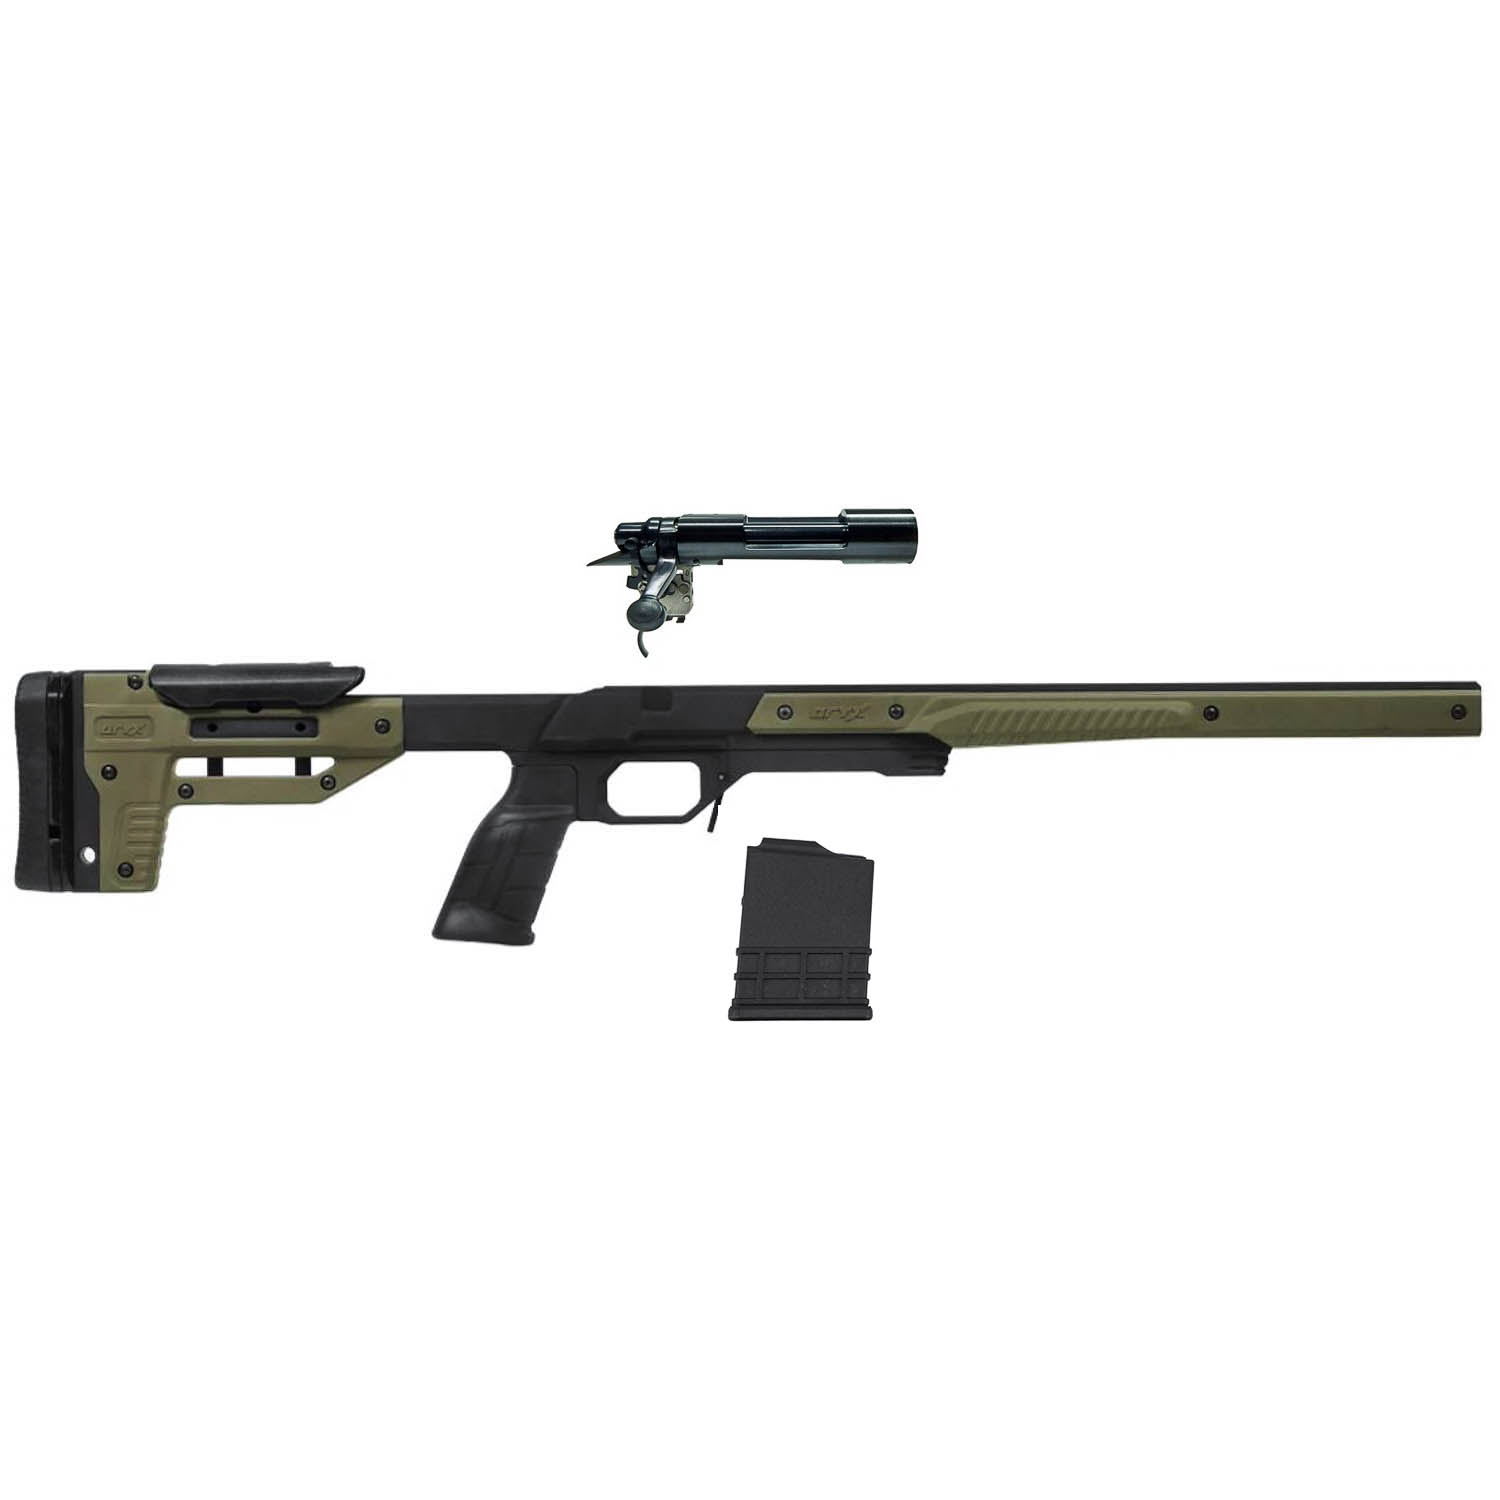 Remington 700 Short Action Receiver + ORYX Chassis + Magazine Kit: Midwest  Gun Works